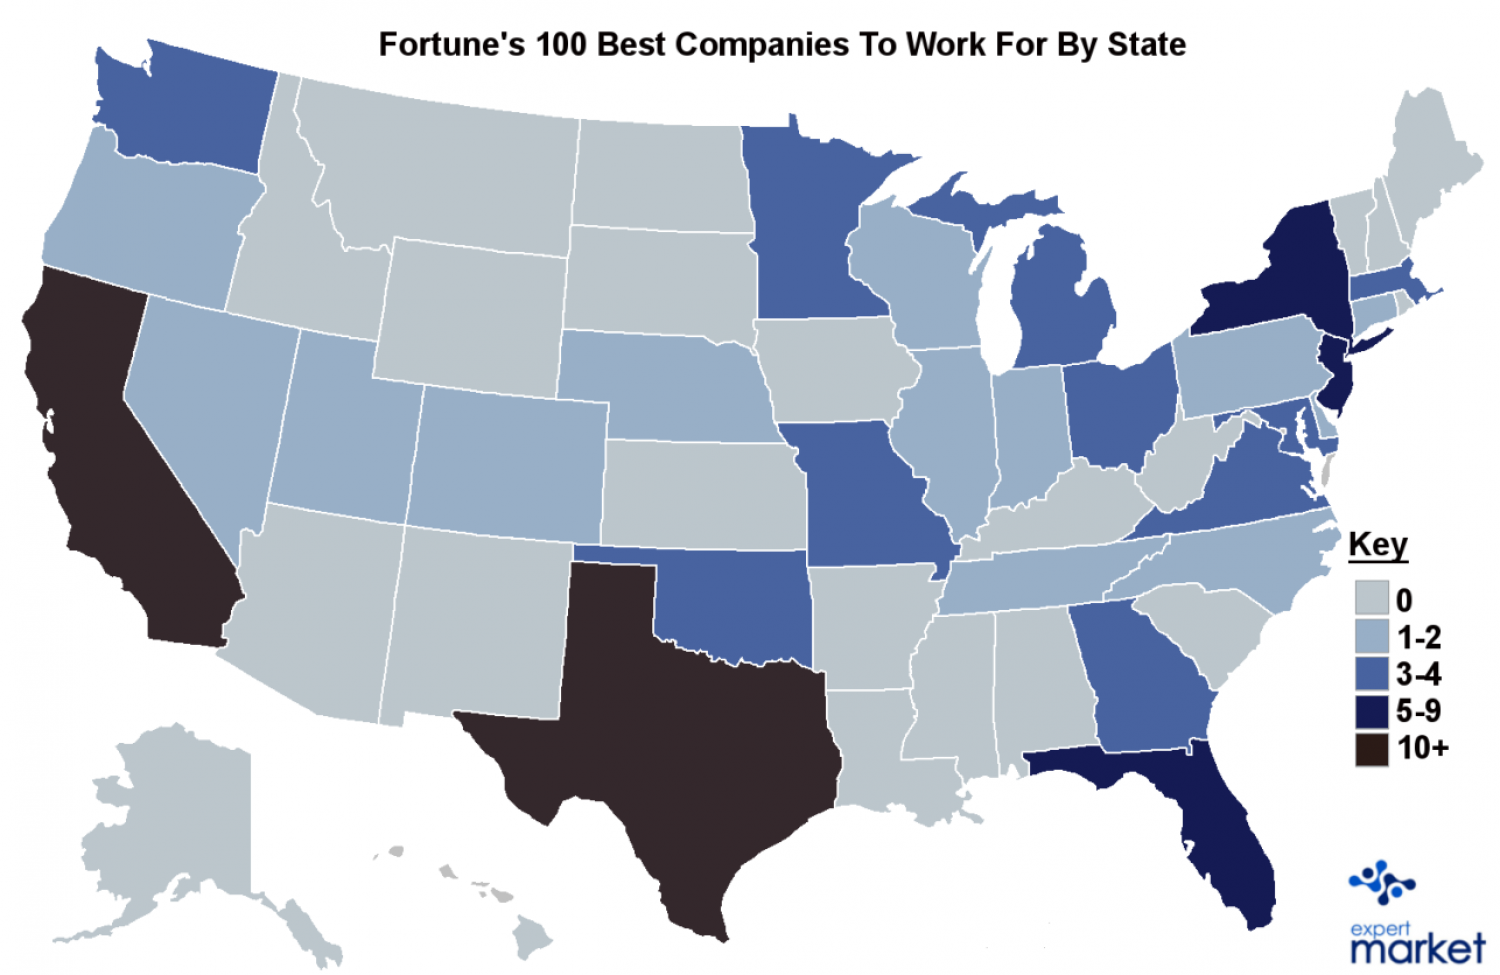 America's 100 Best Companies to Work for by State Infographic